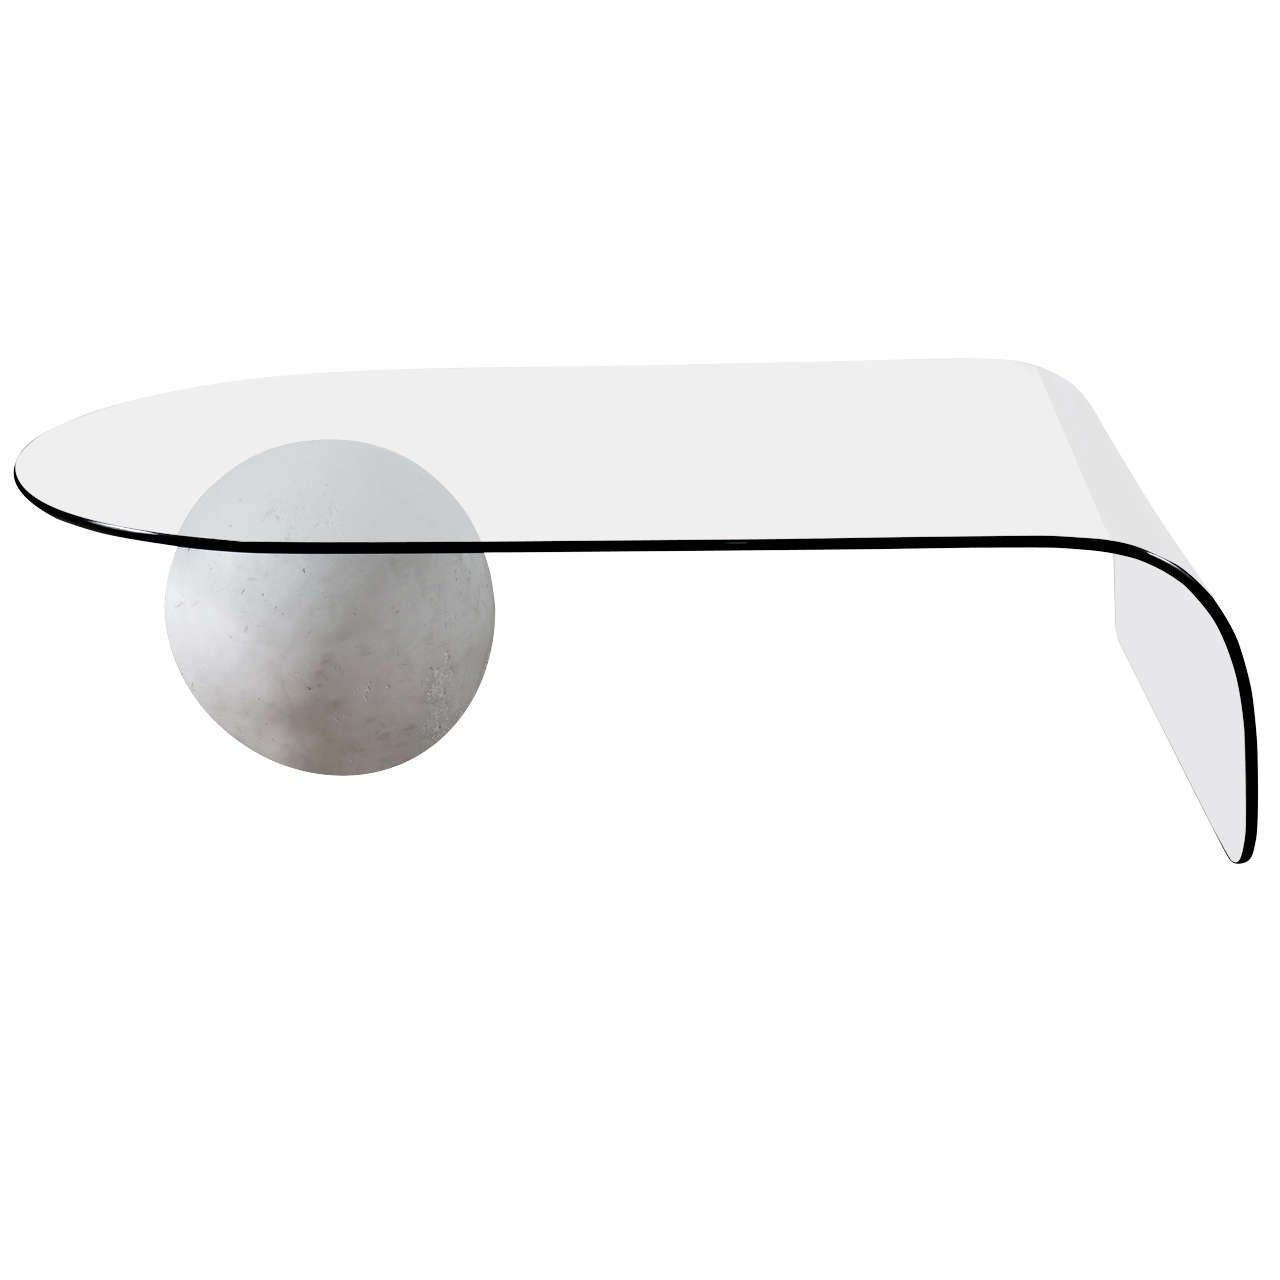 A Glass Coffee Table with a Plaster Ball